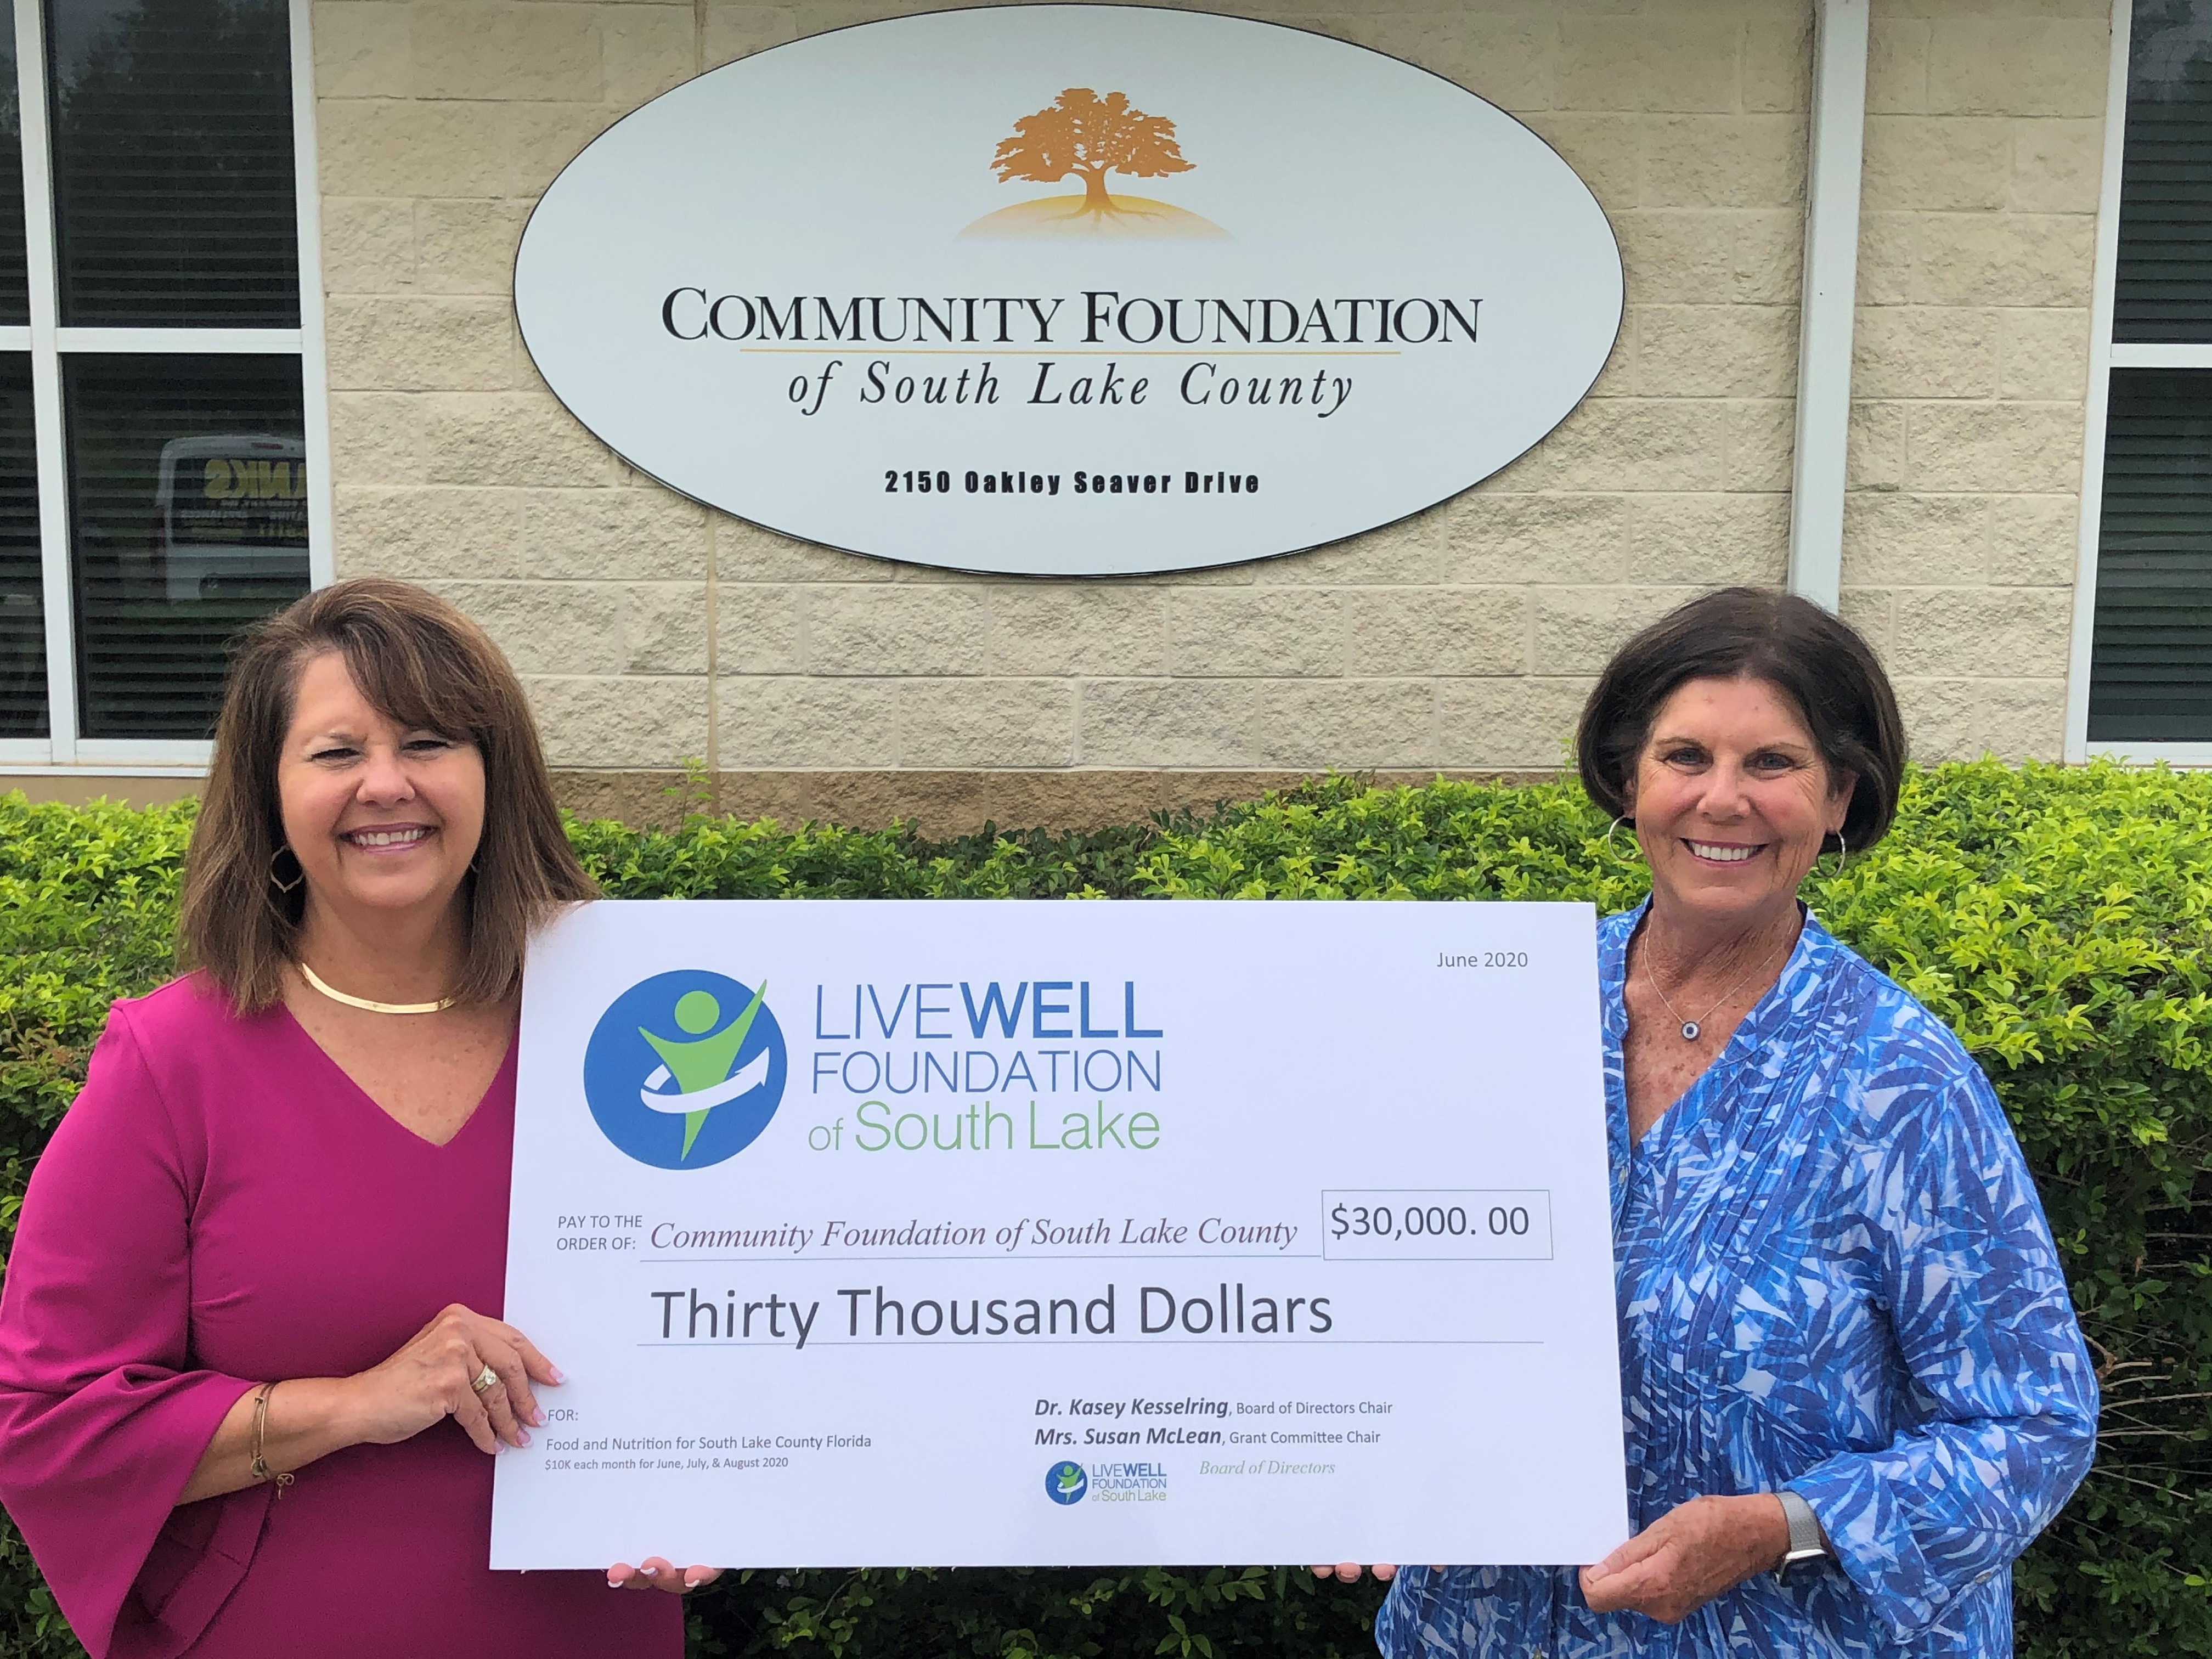 Live Well Foundation Donates $30,000 to Community Foundation of South Lake to Feed Those in Need